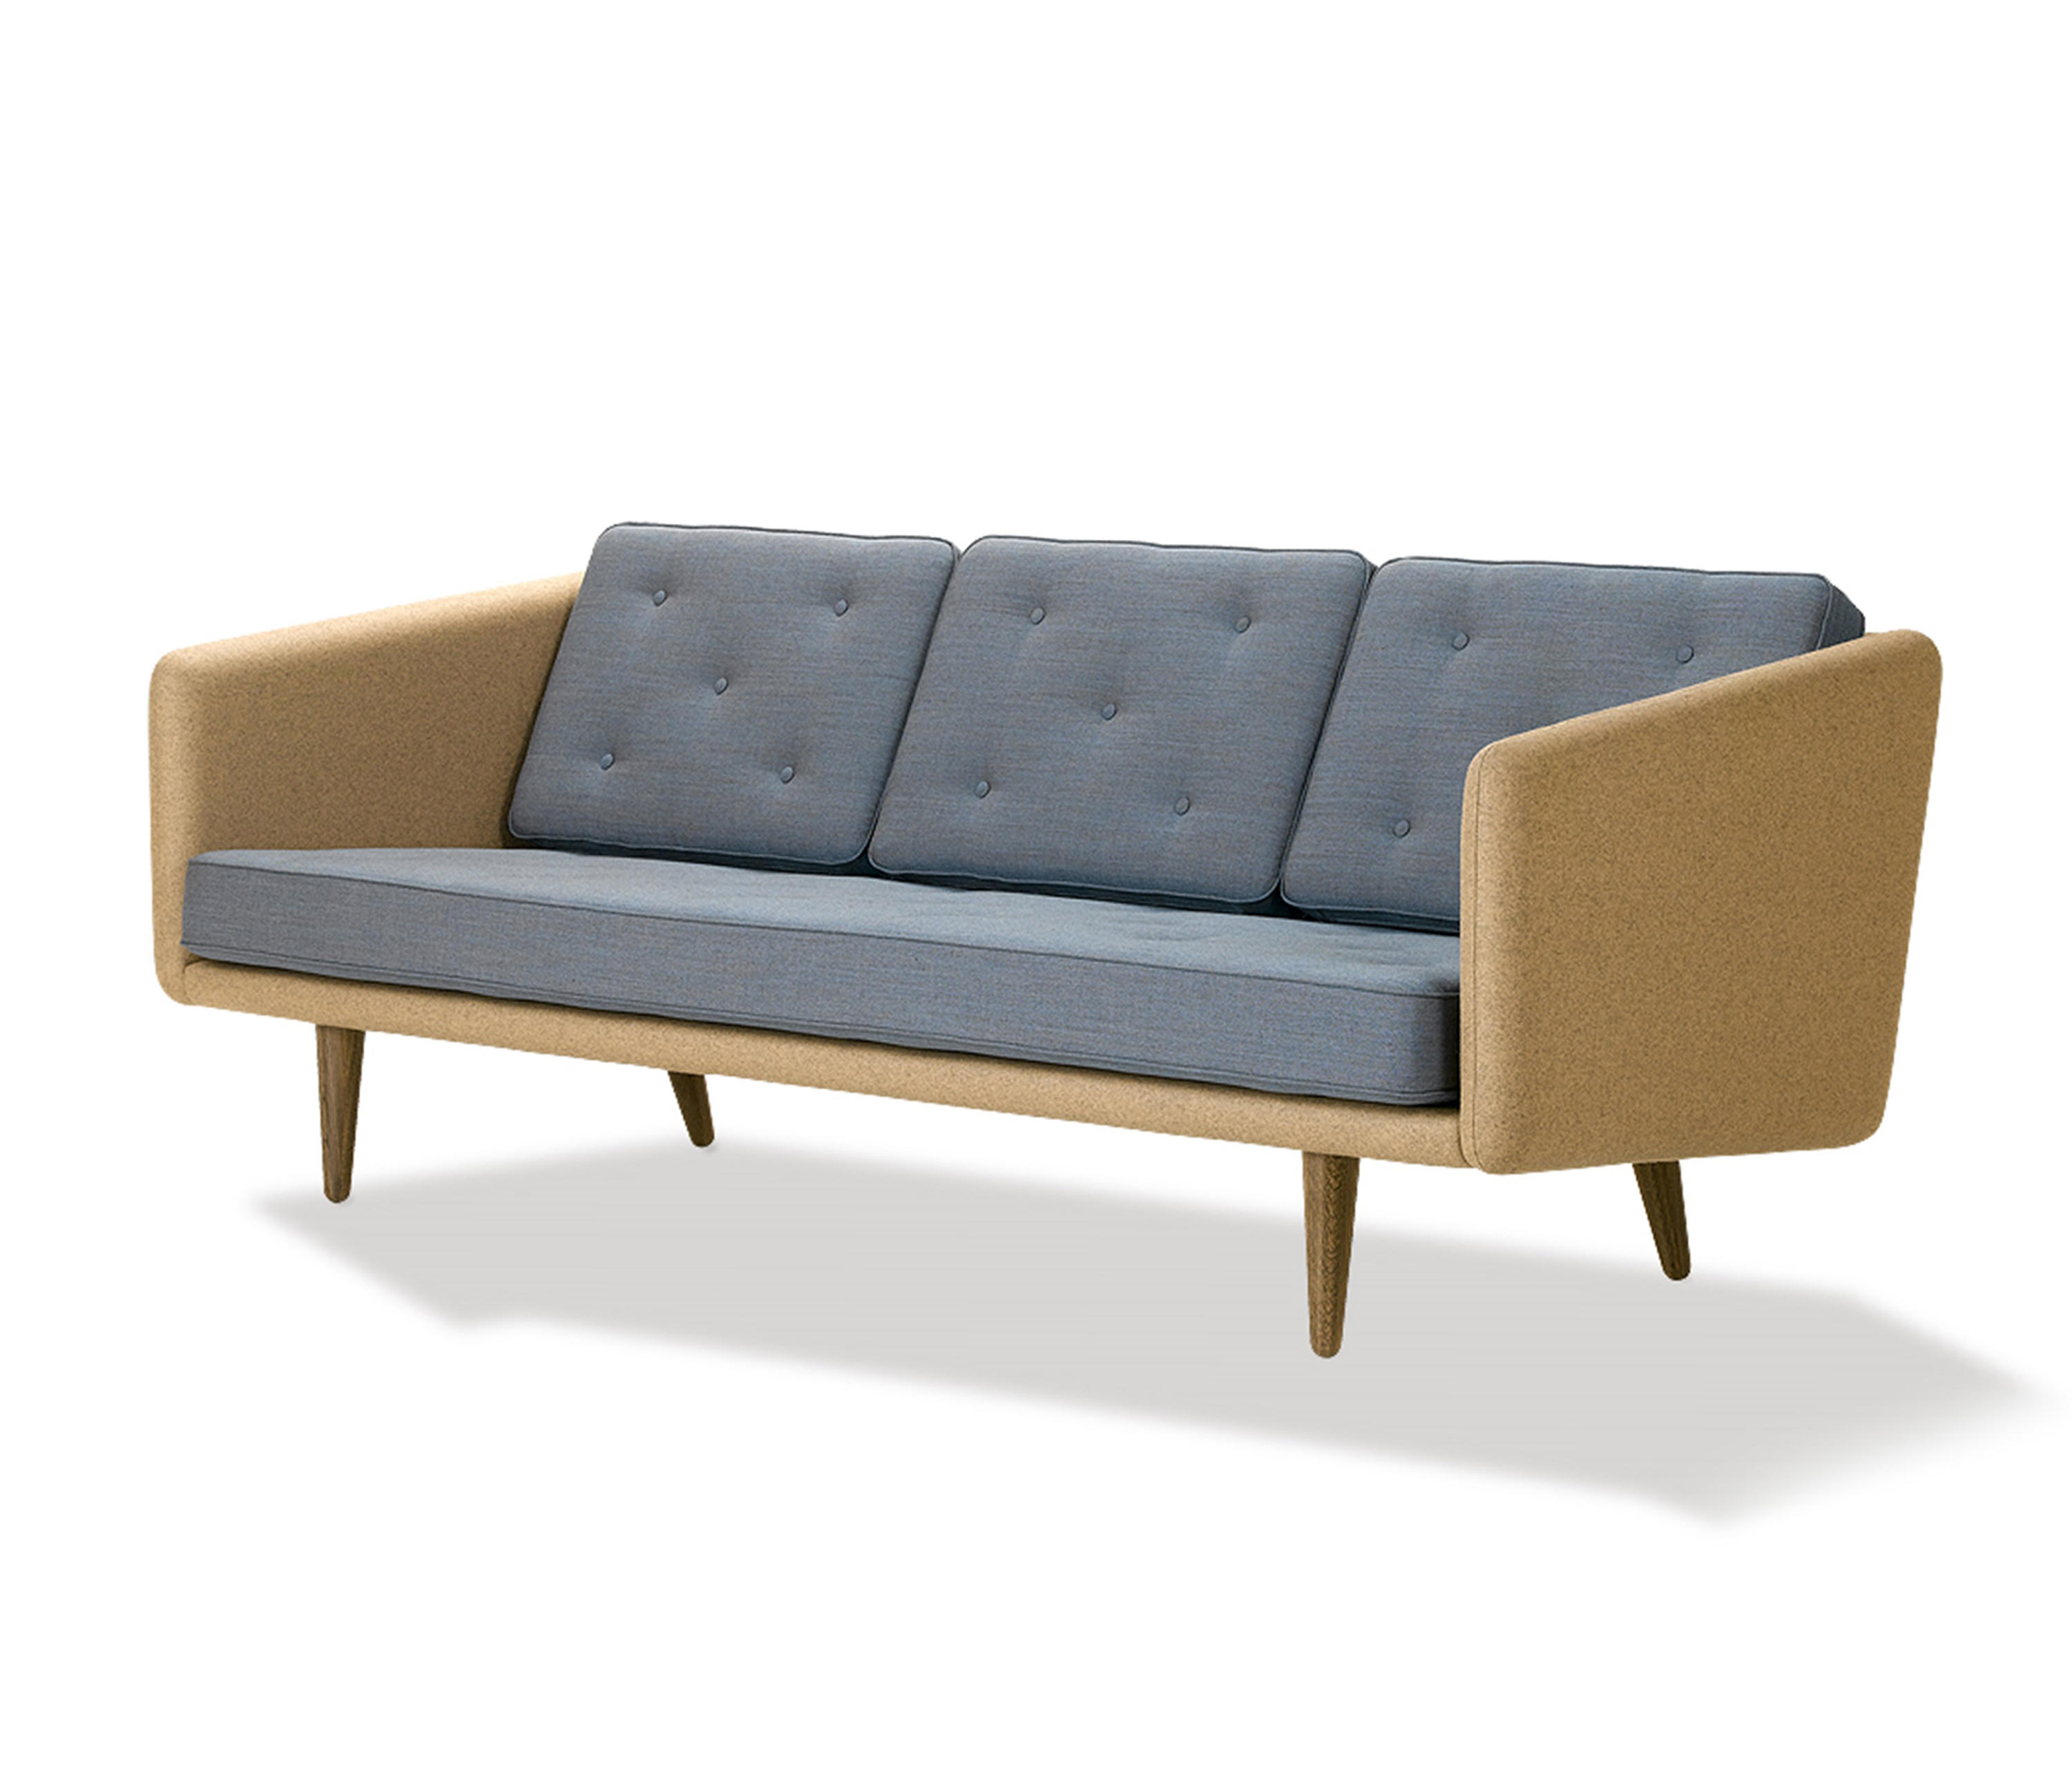 NO 1 Lounge sofas from Fredericia Furniture